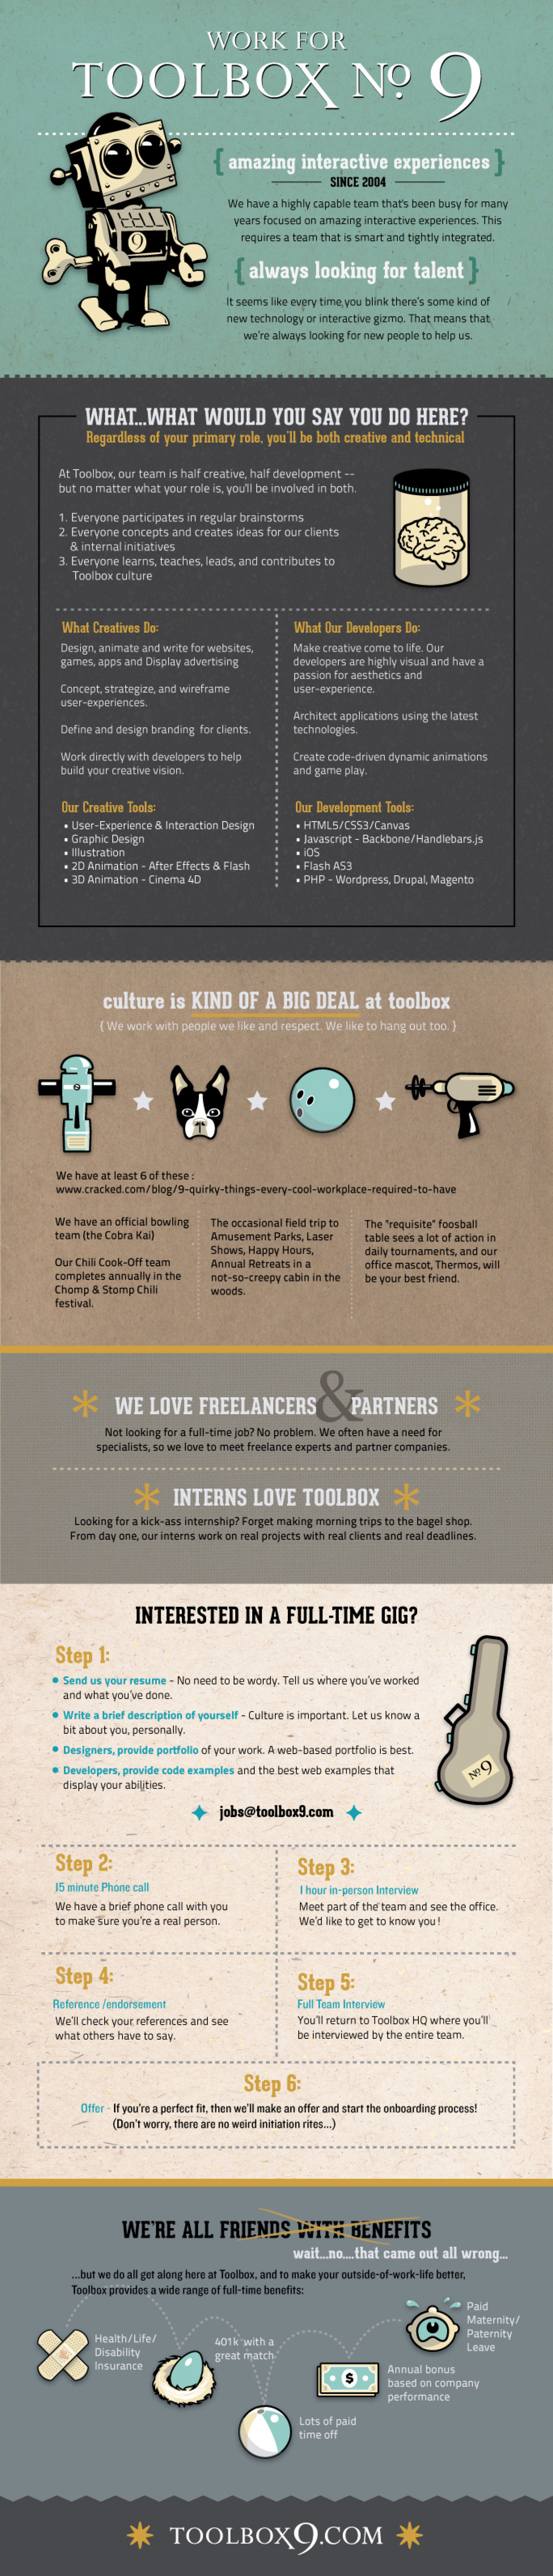 Working for Toolbox No. 9 Infographic